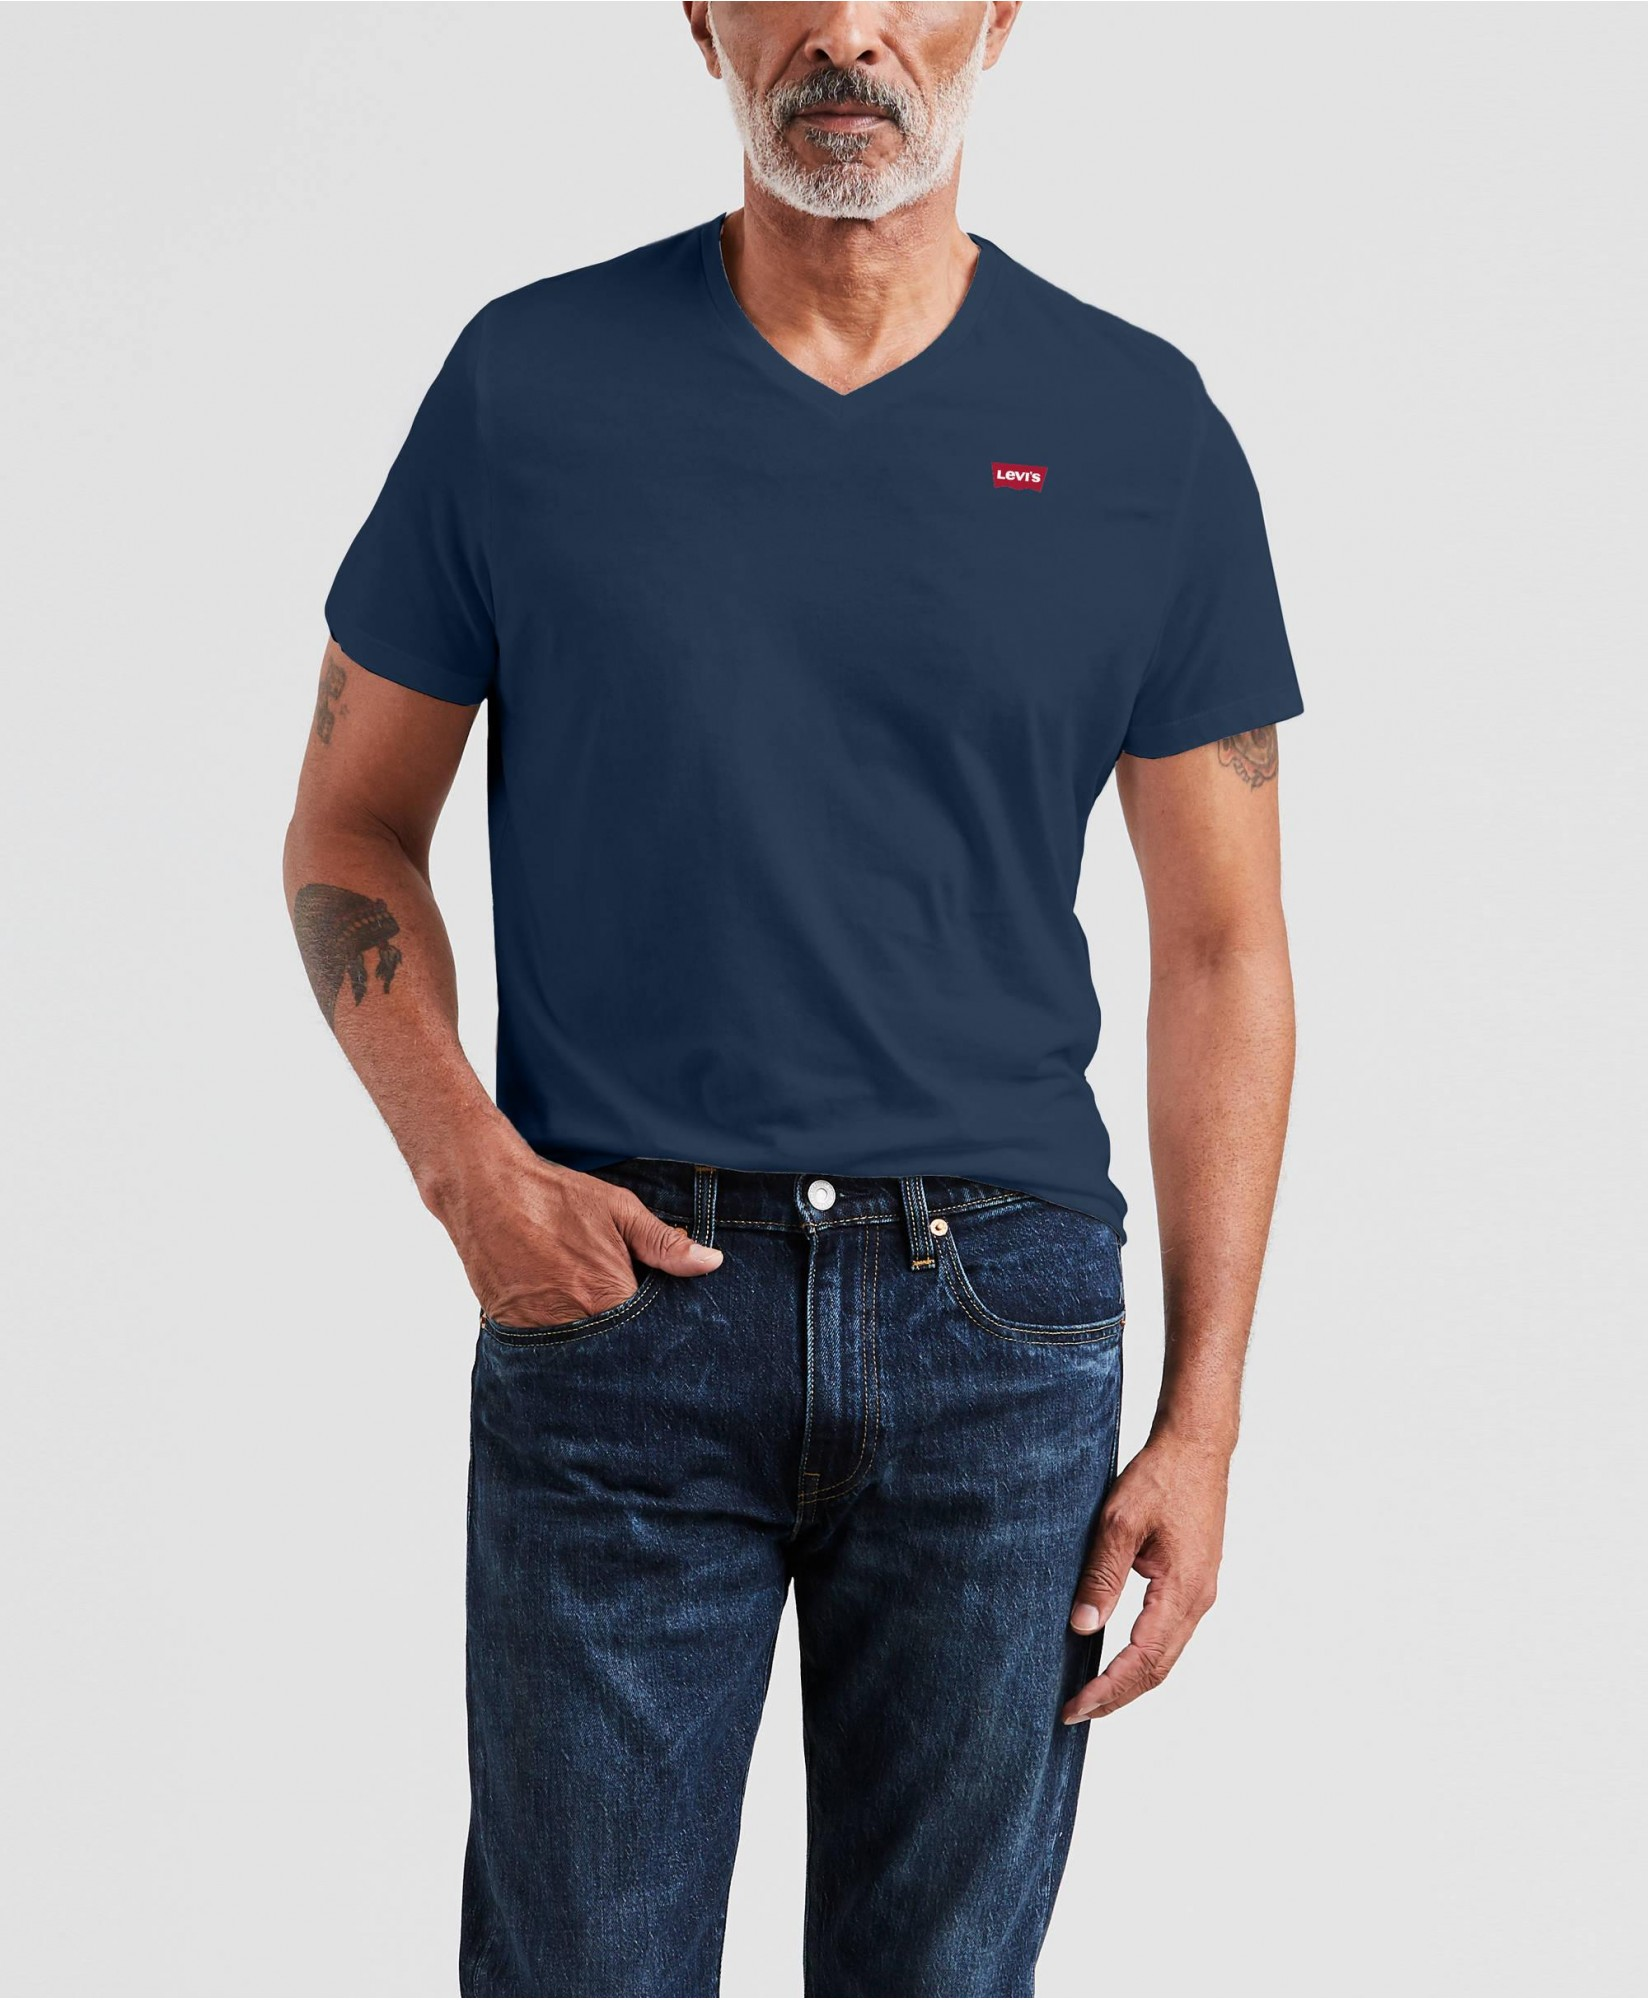 LEVI'S ORIGINAL HOUSEMARK V-NECK TEE LEVI'S ORIGINAL HOUSEMARK V-NECK TEE